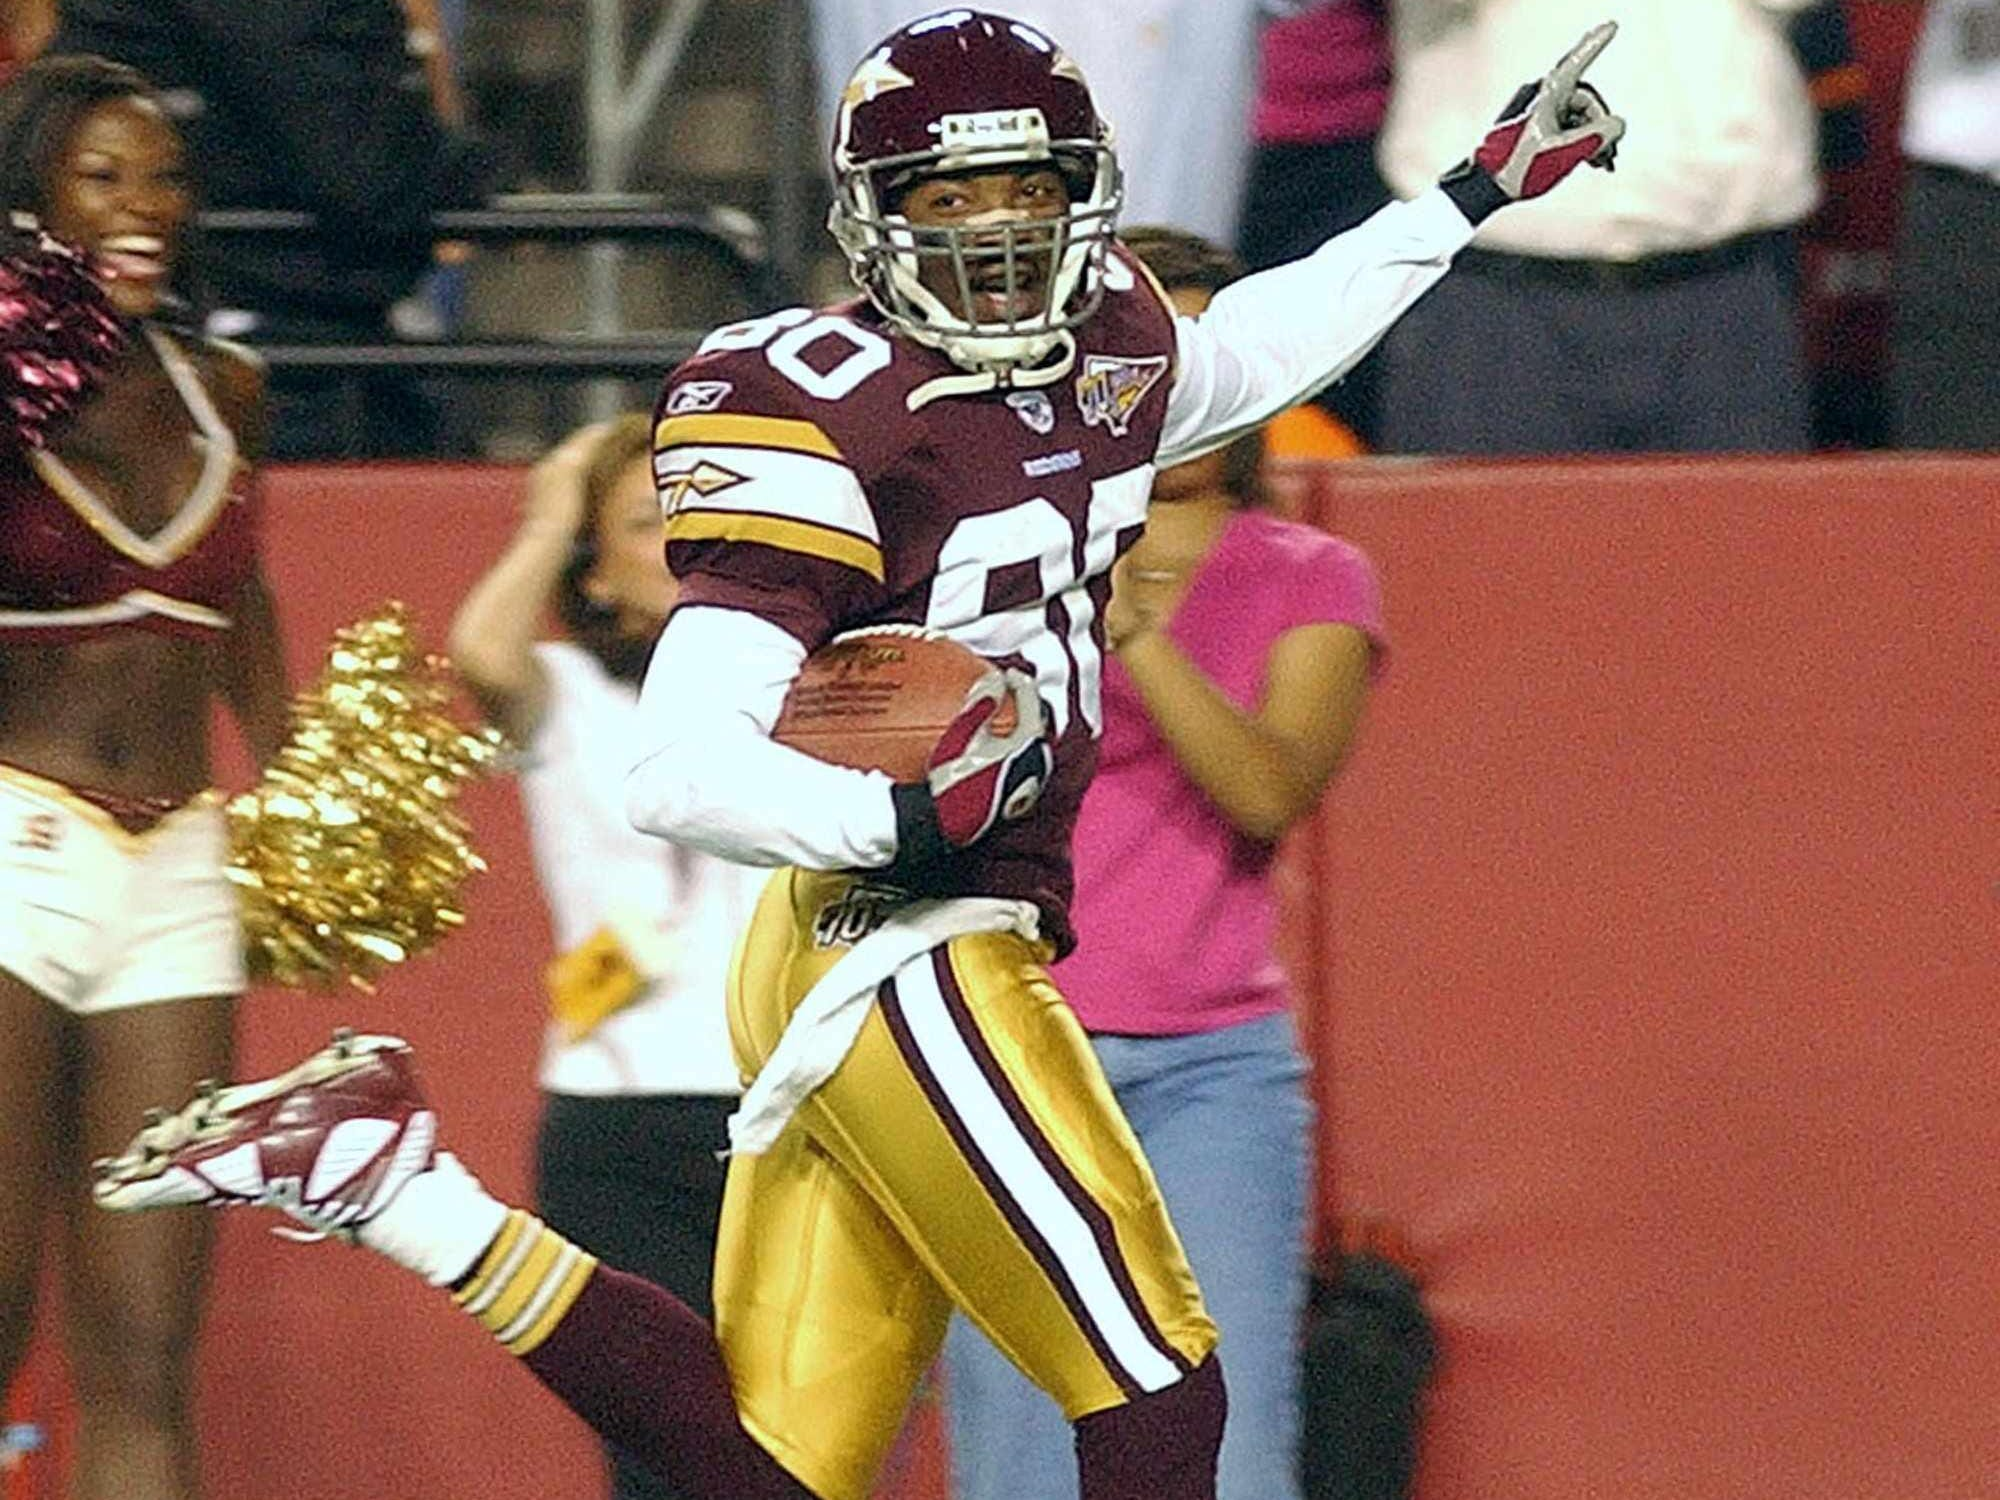 Washington Redskins Jacquez Green (80) returns a punt for a 90-yard touchdown against the Philadelphia Eagles during the second quarter Sept. 16, 2002, at FedEx Field in Landover, Md.